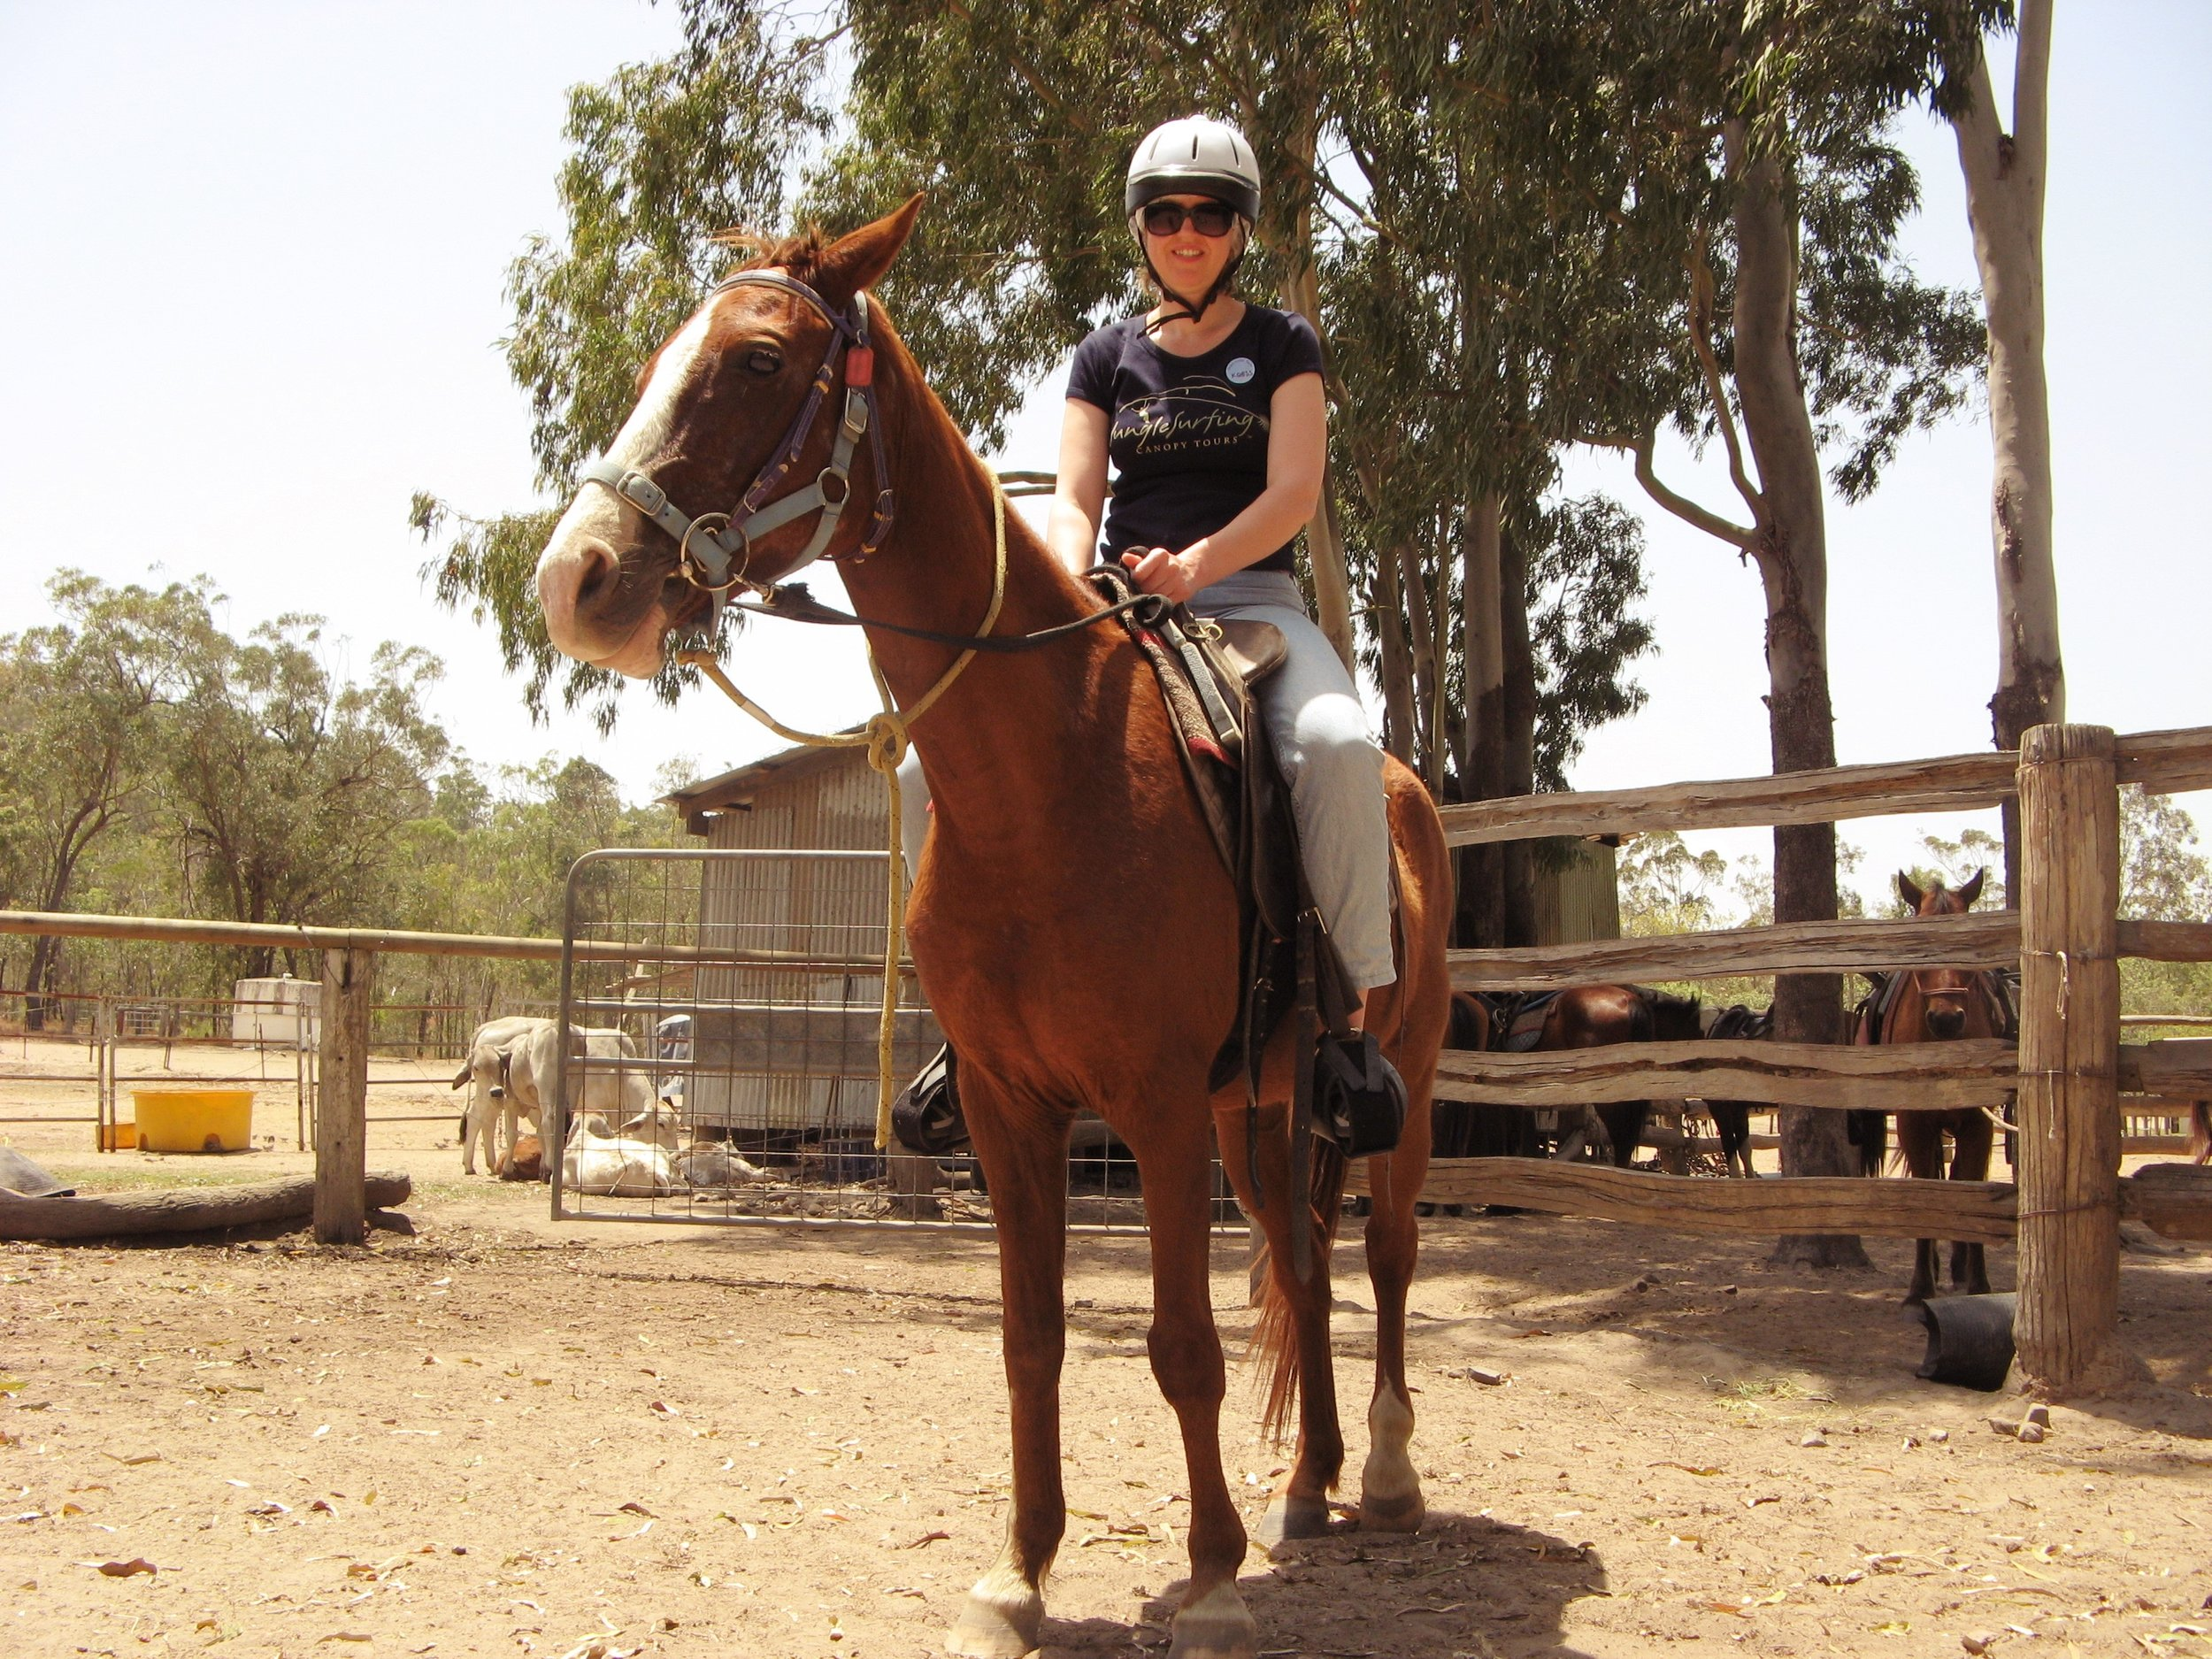 EMMA-JANE READY FOR A RIDING SESSION. THIS WAS THE FIRST TIME ON A HORSE IN MANY YEARS. CAIRNS, QLD, AUSTRALIA OCTOBER, 2008